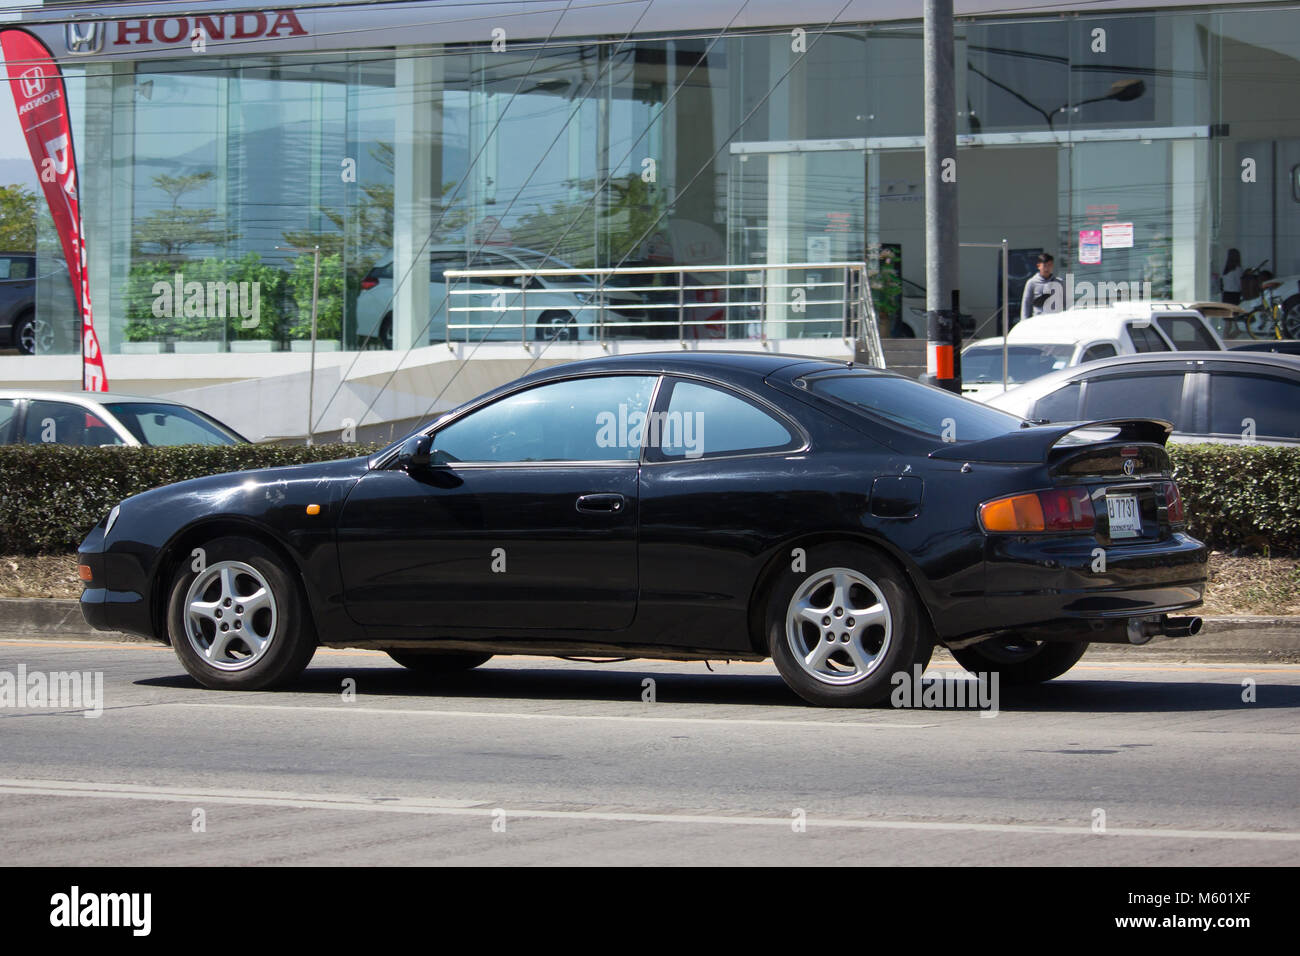 CHIANG MAI, THAILAND  JANUARY 22 2018: Private Car, Toyota Celica. Photo At  Road No 121 About 8 Km From Downtown Chiangmai, Thailand.